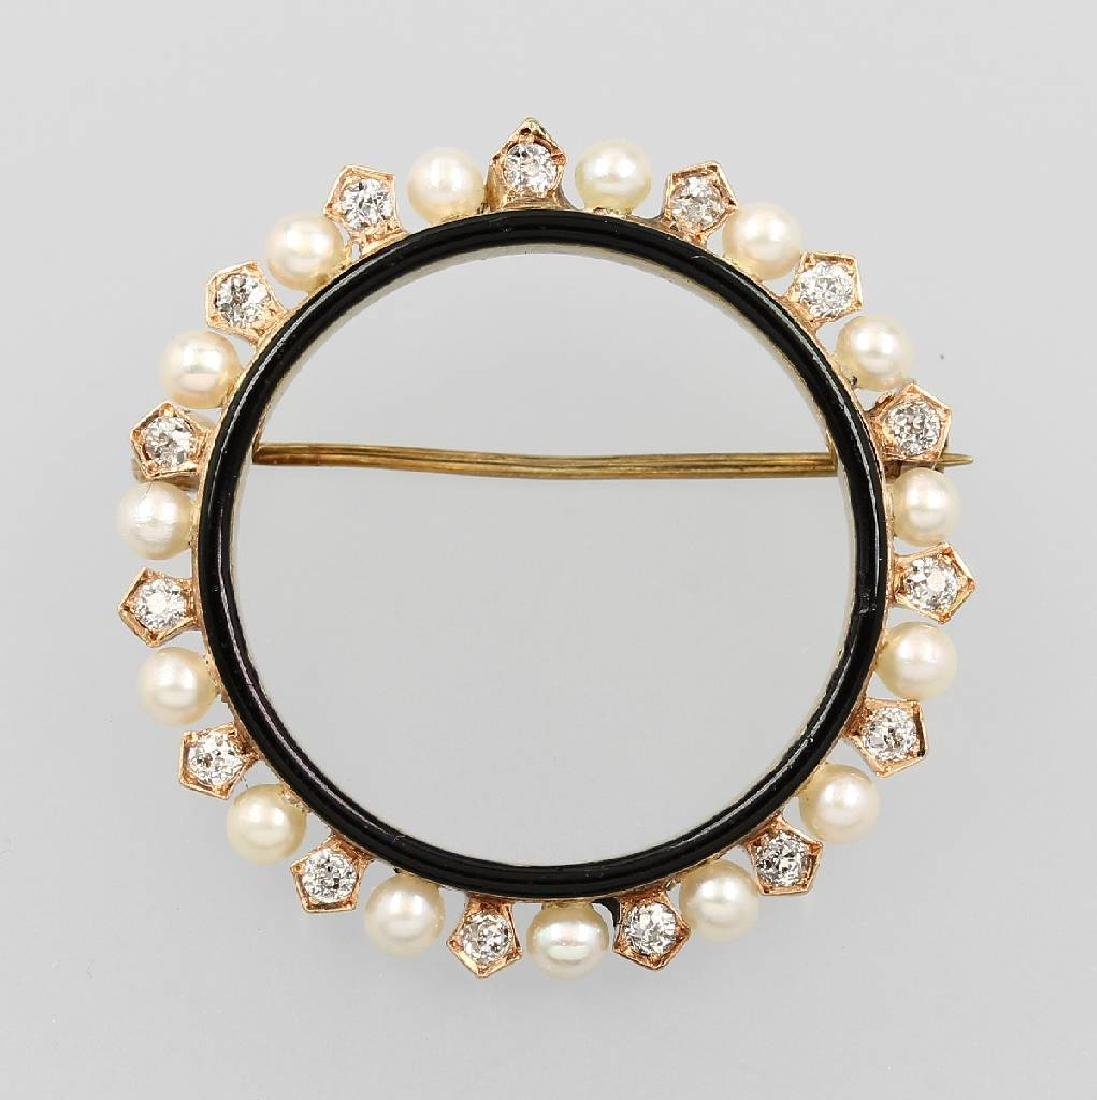 14 kt gold circle brooch with pearls and diamonds